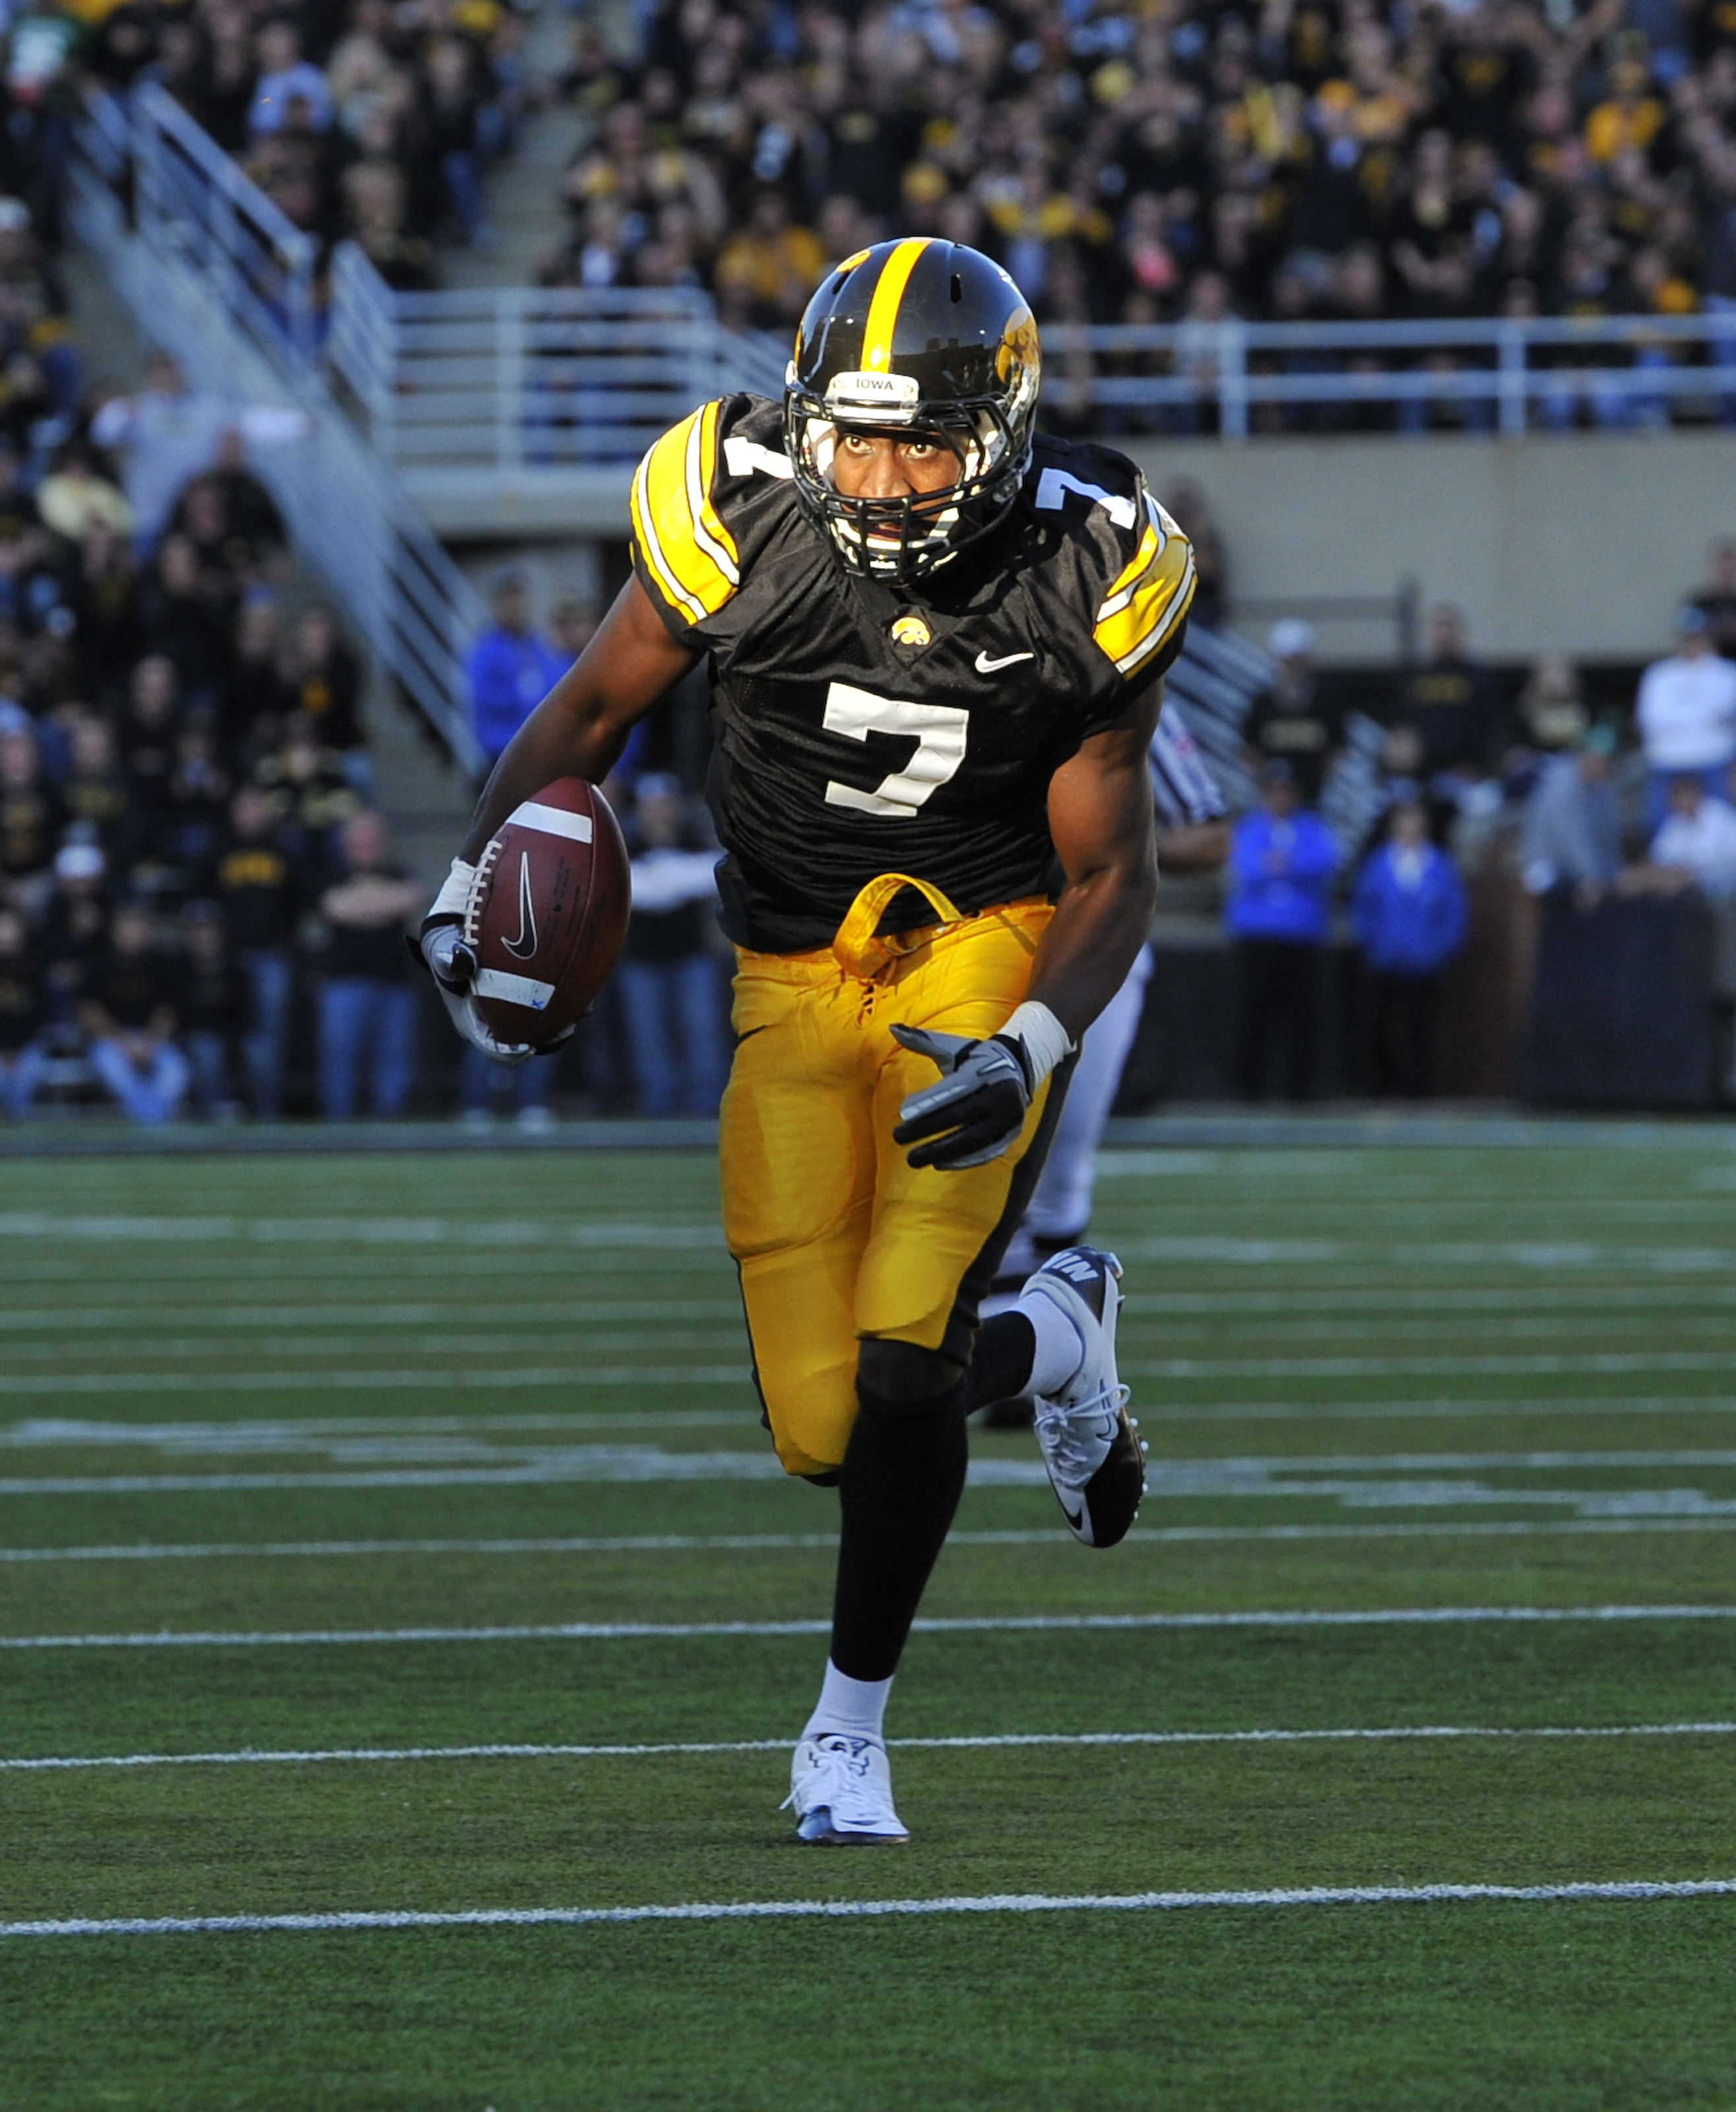 What Are The Starters From The 2010 Orange Bowl Champion Iowa